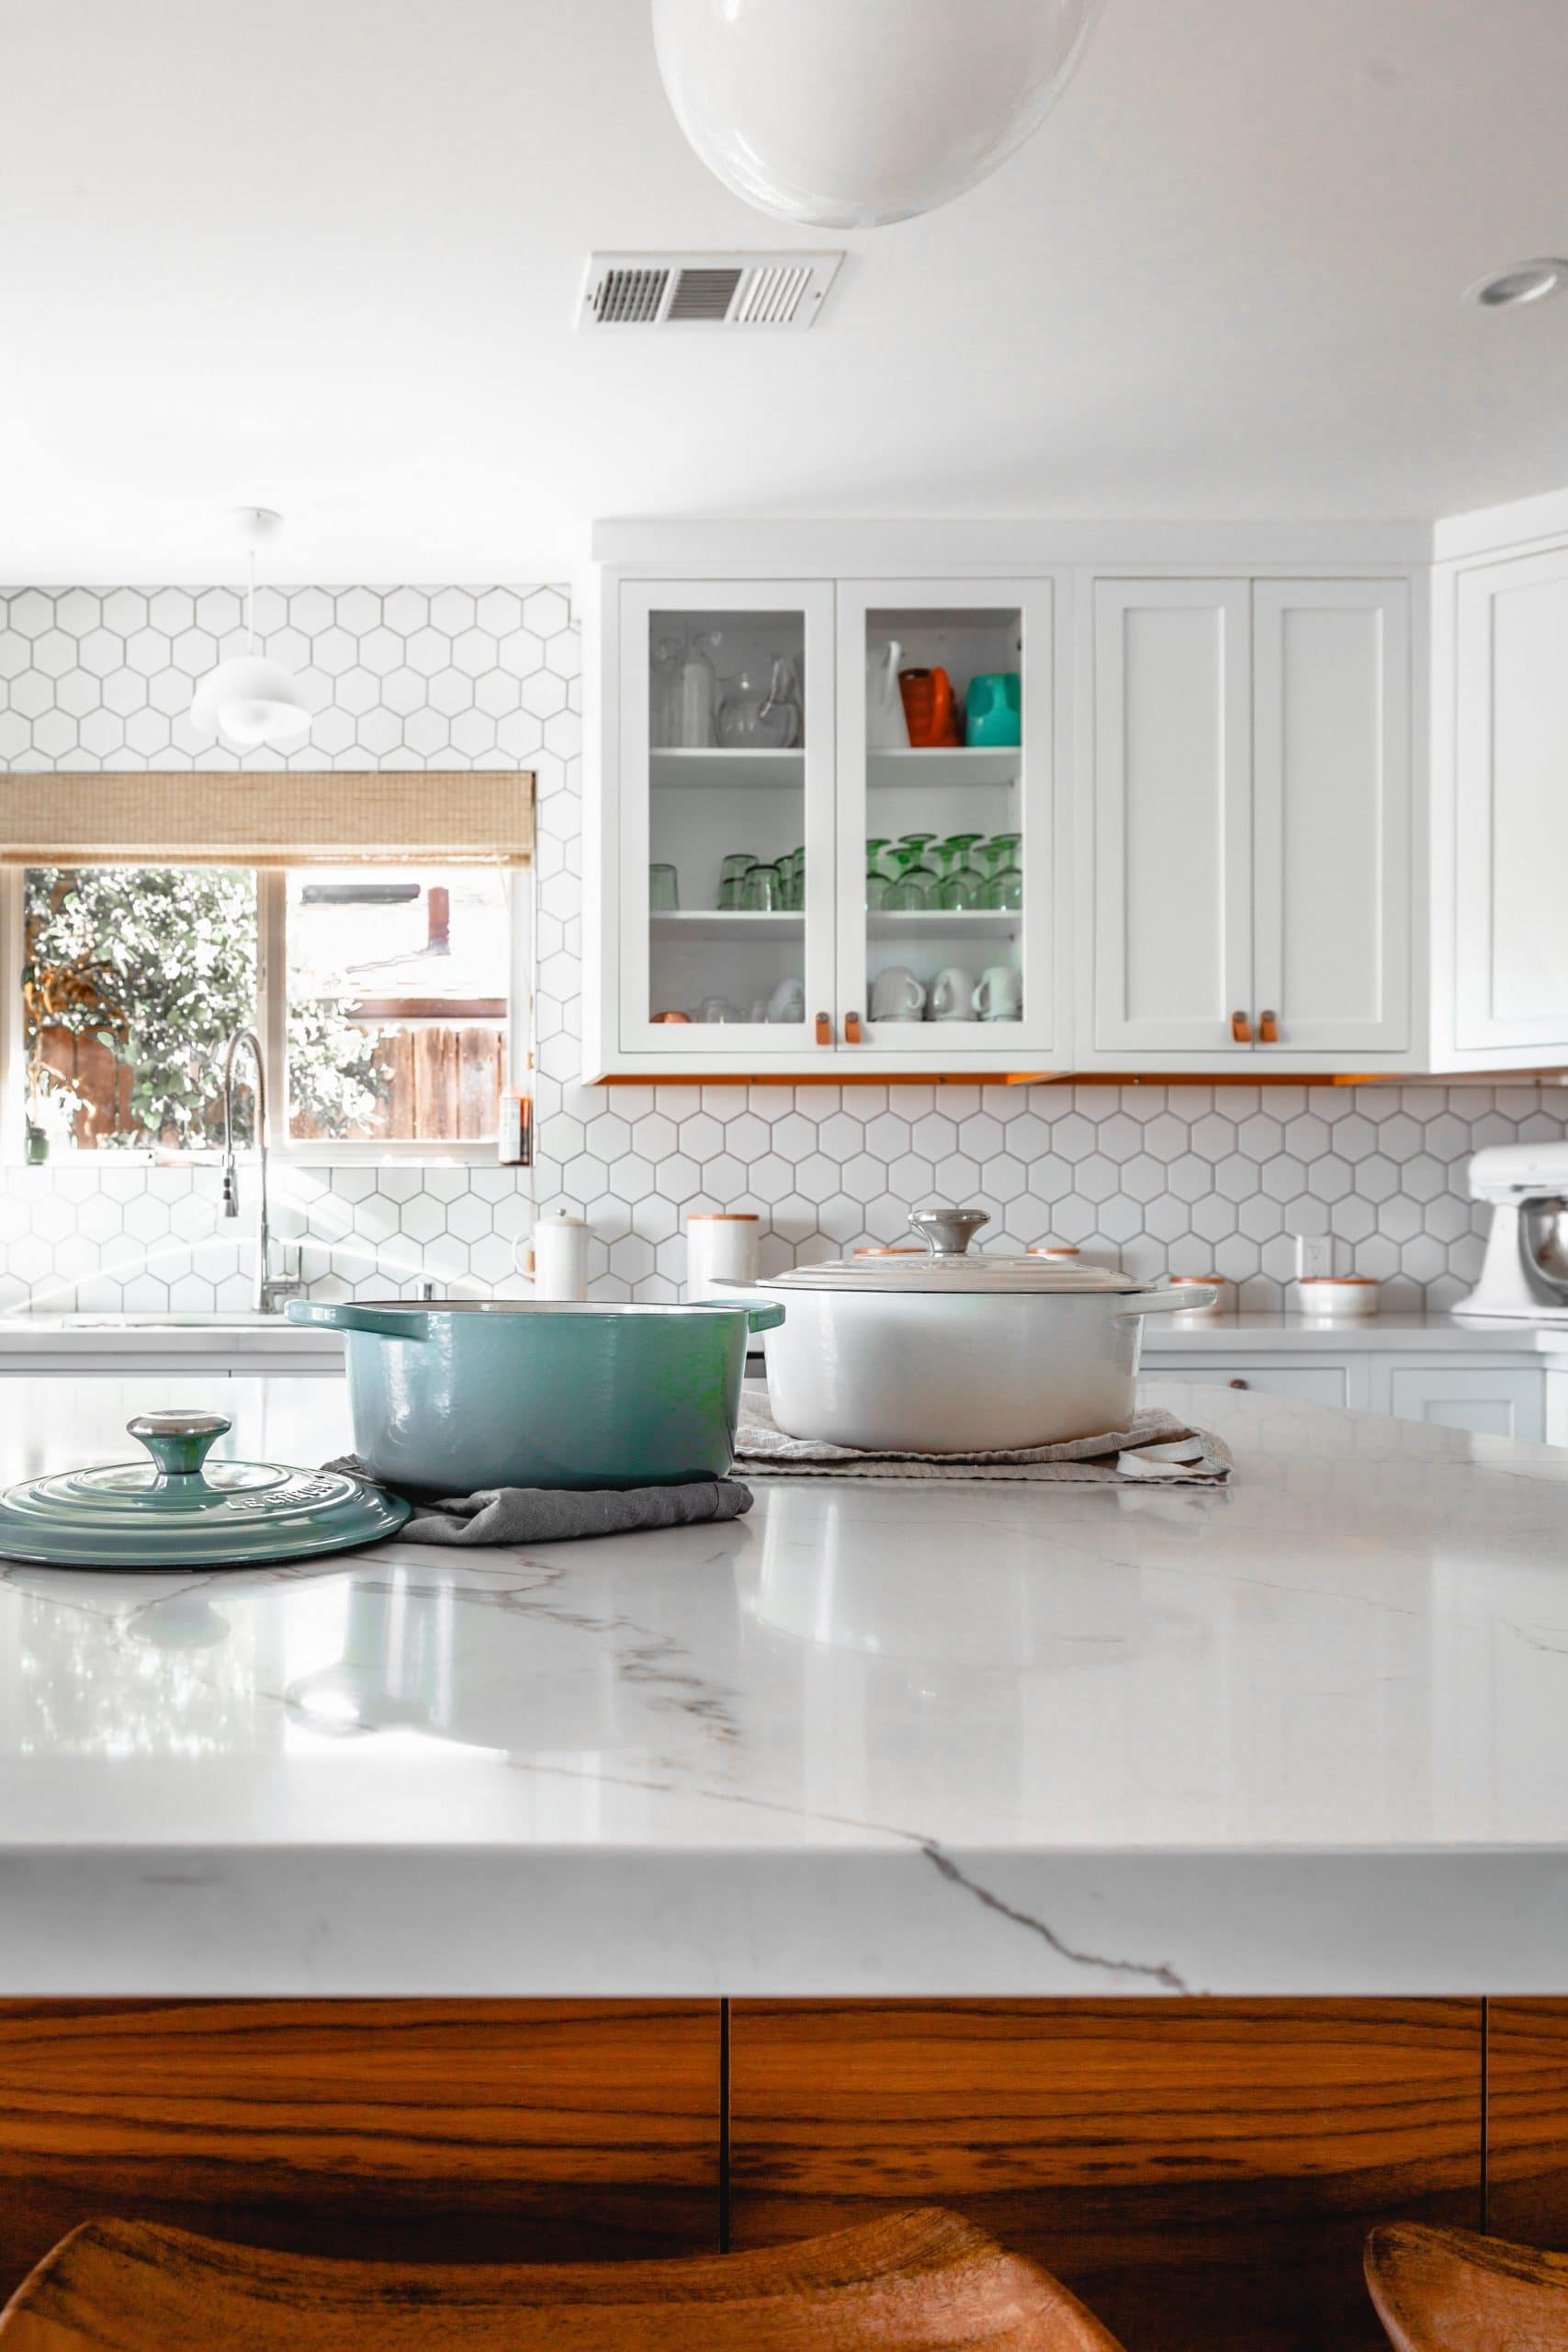 Marble Care: Professional Tips for Cleaning Marble Countertops and Floors